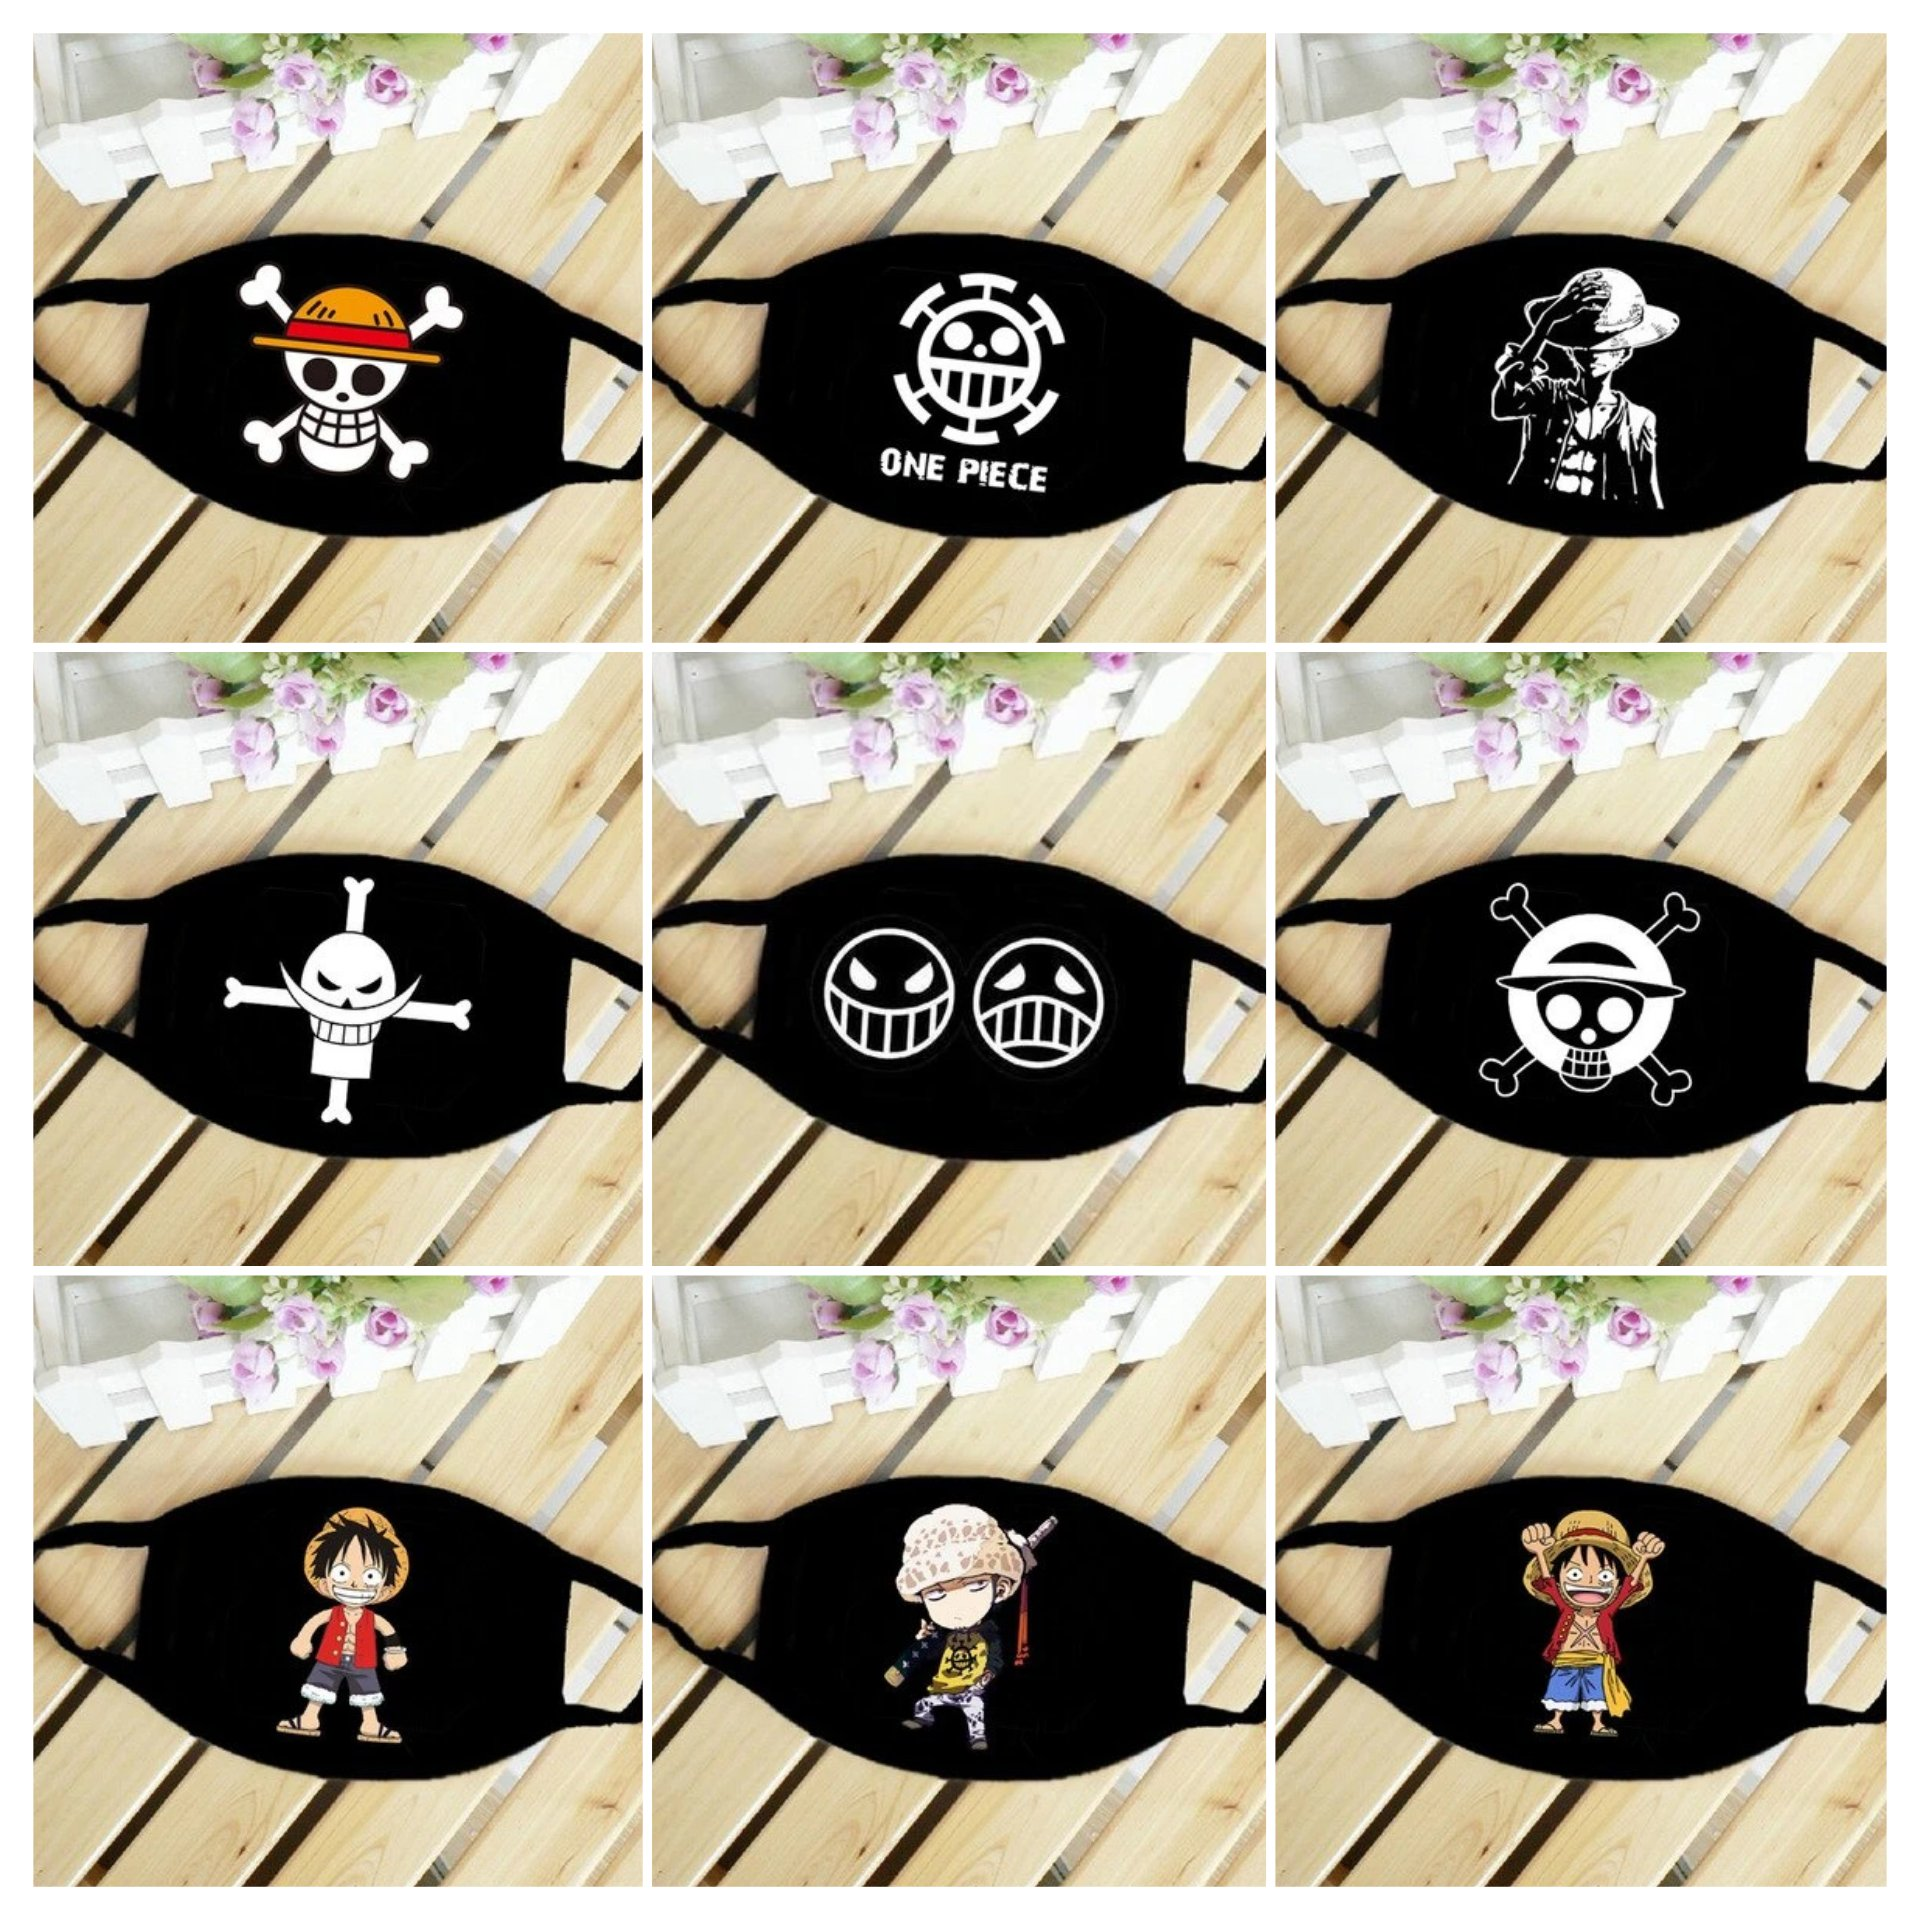 One Piece - Face Masks MNK1108 Straw Hat Official One Piece Merch